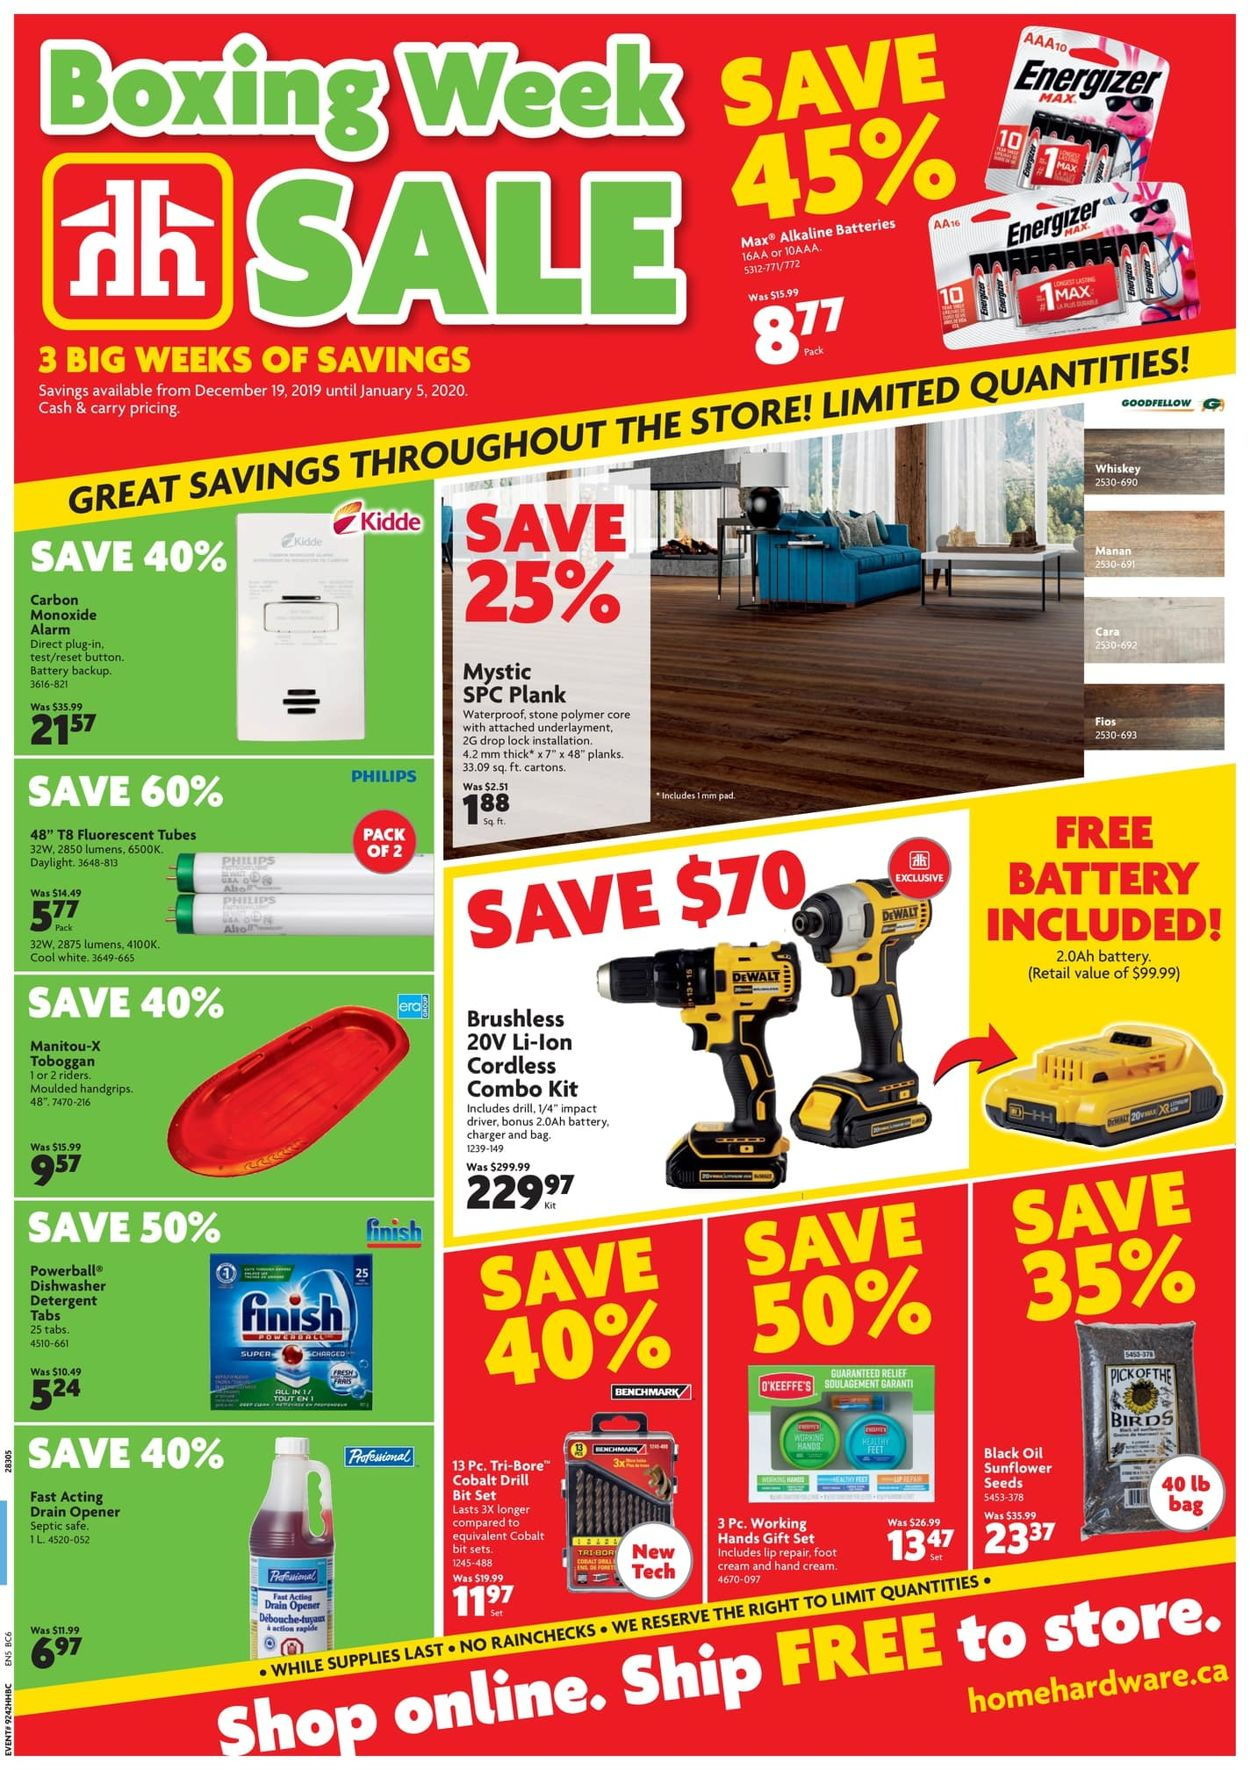 Home Hardware - Boxing Week 2019 Sale